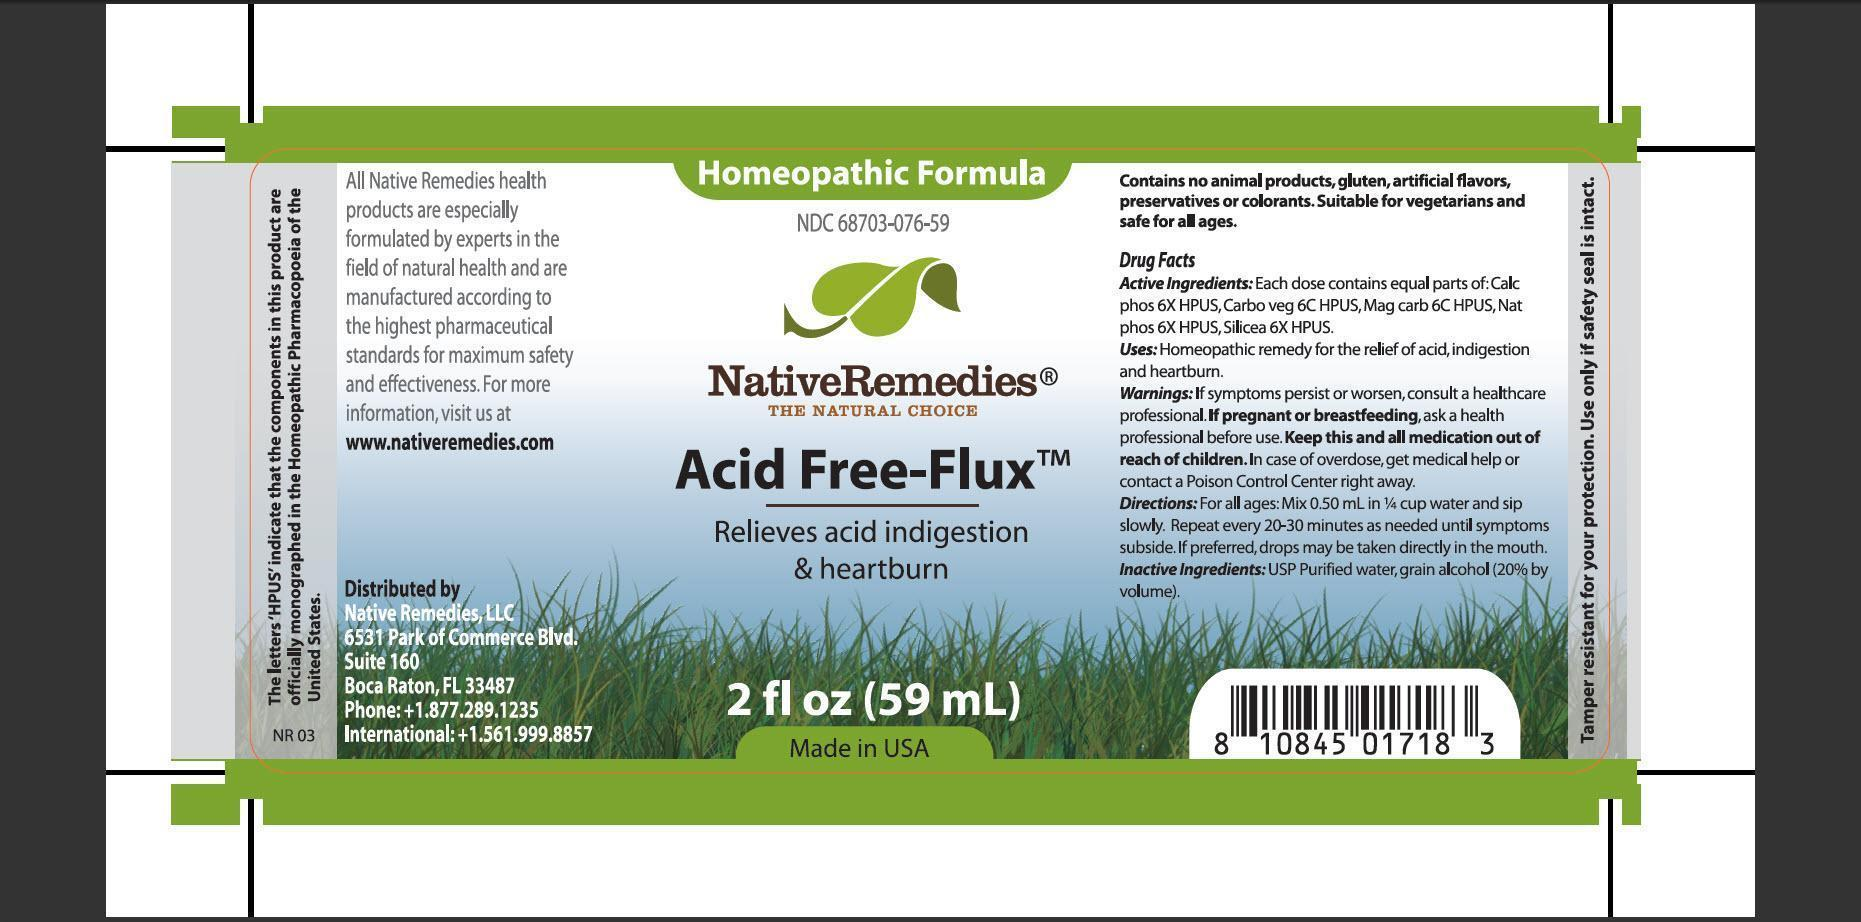 Acid Free-flux (Calc Phos, Carbo Veg, Mag Carb, Nat Phos, Silicea) Tincture [Native Remedies, Llc]